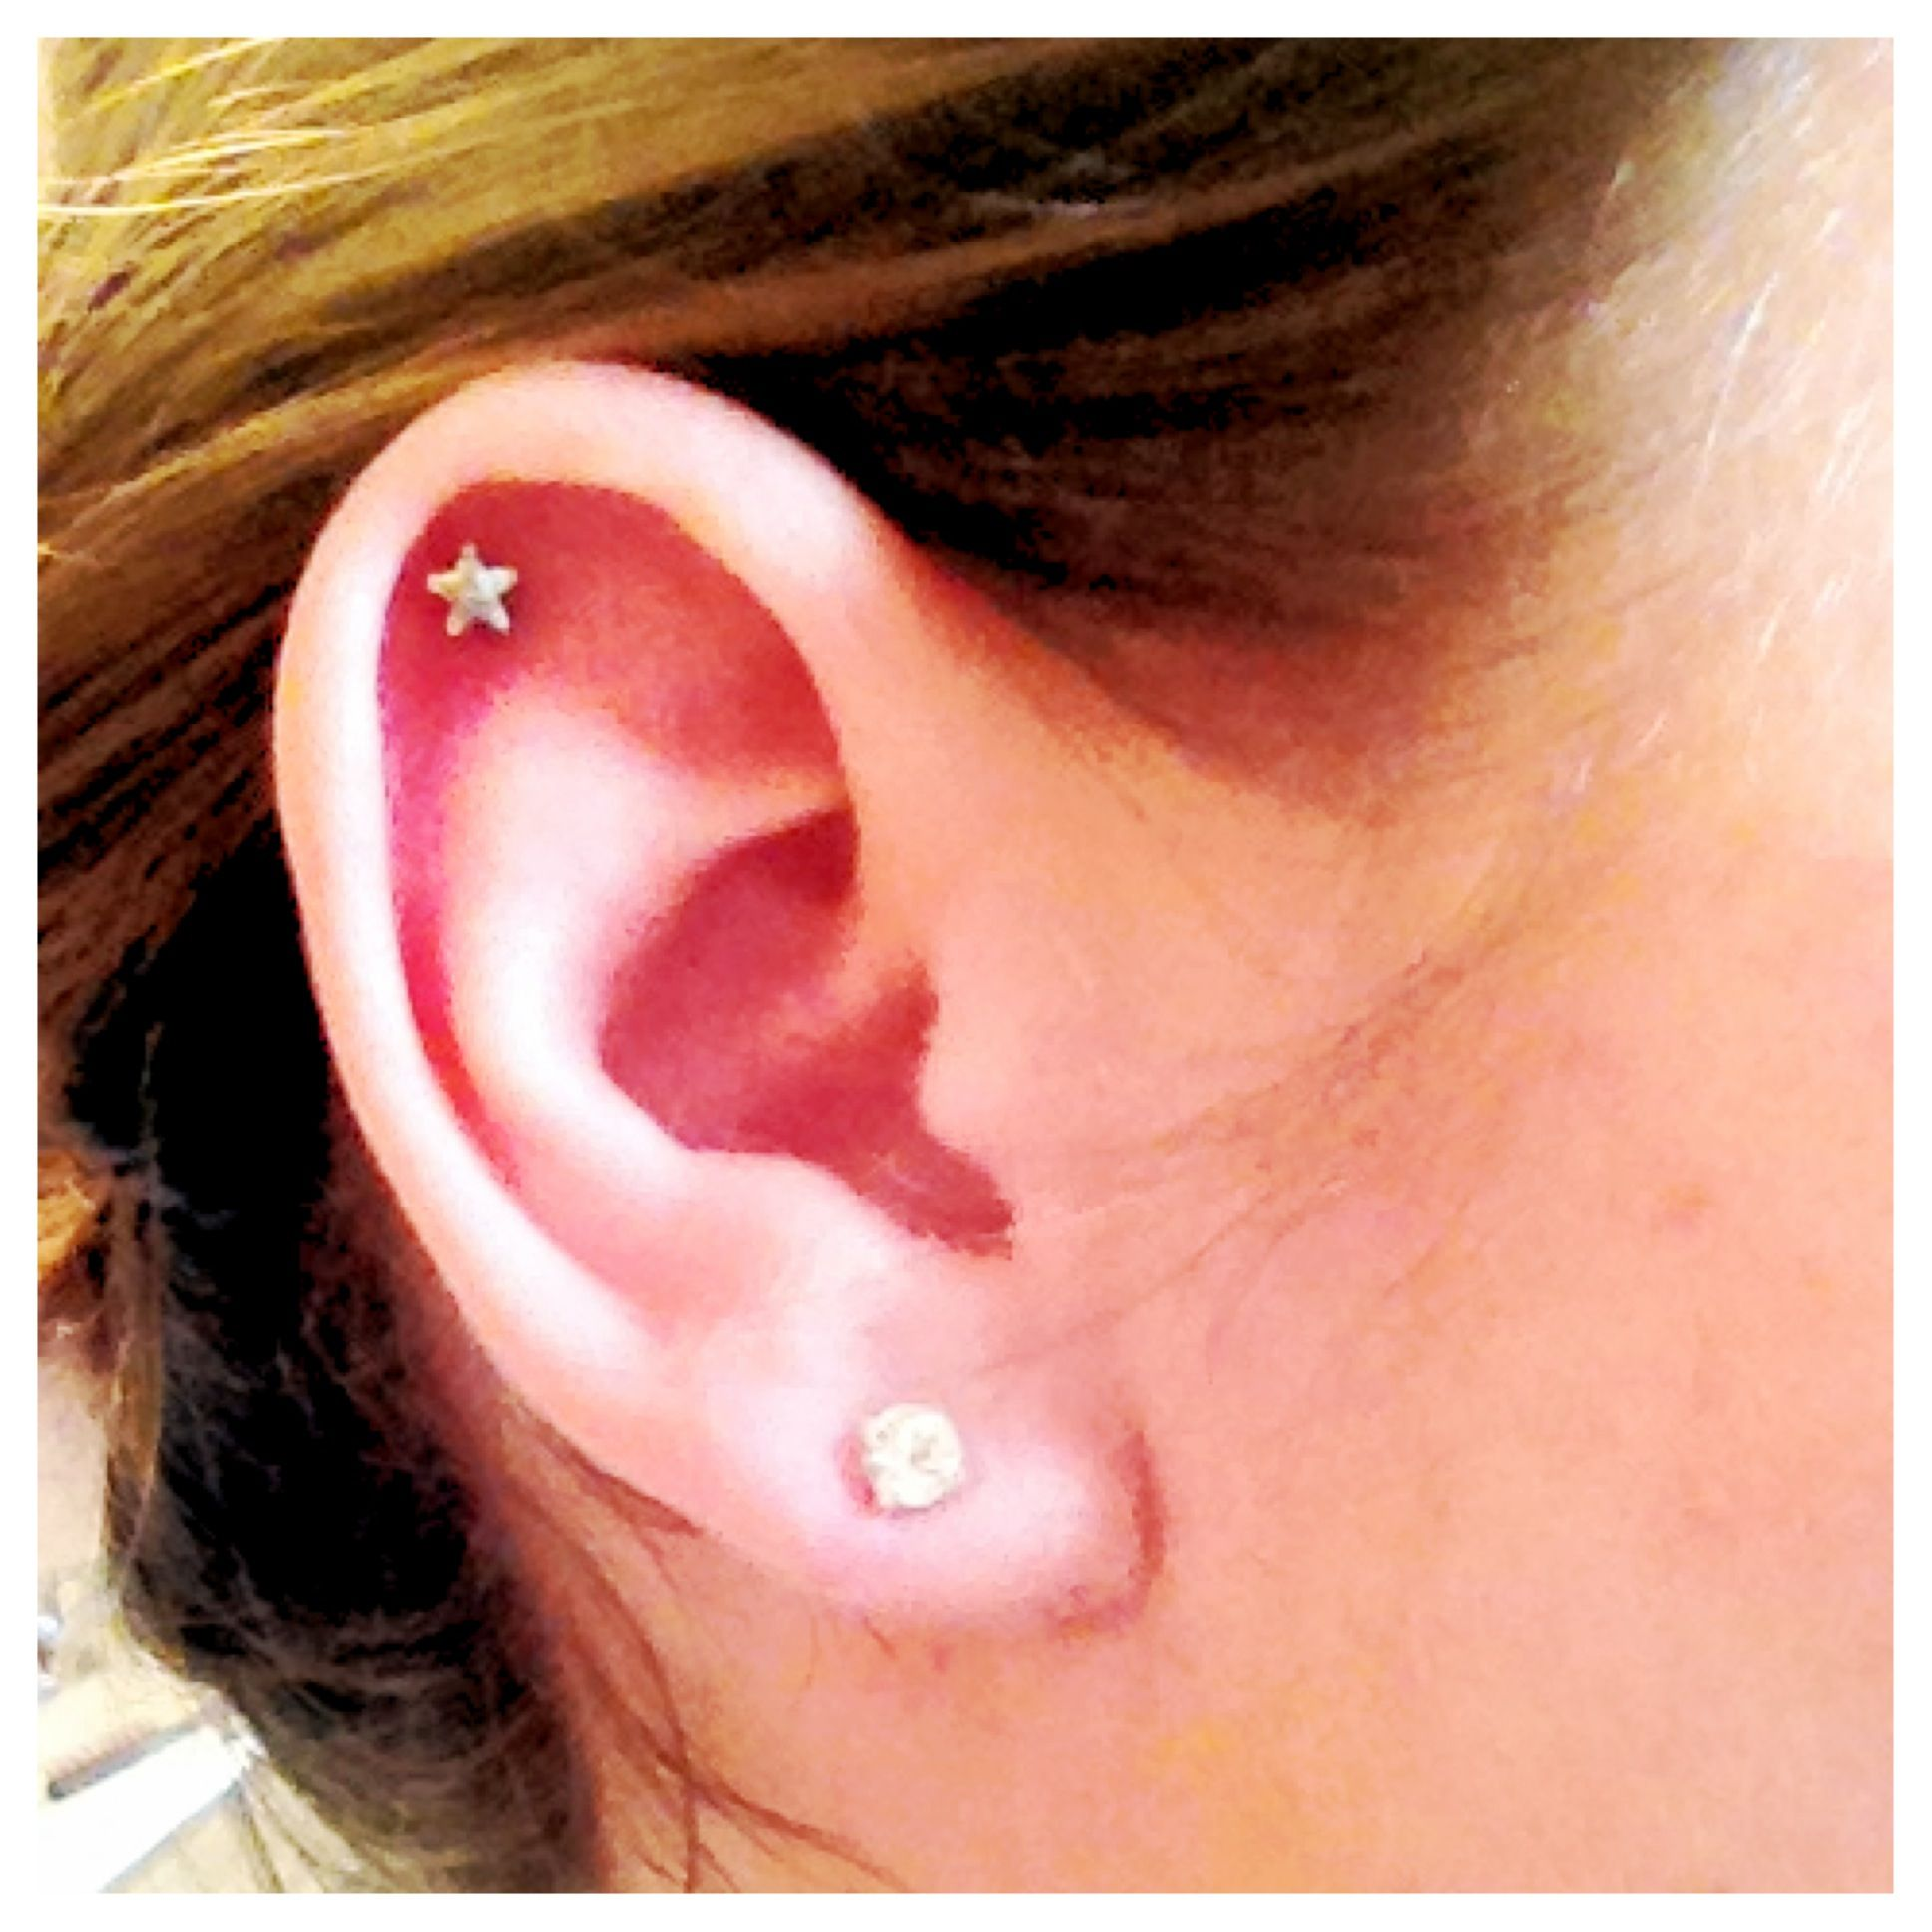 Cartilage piercing ideas  Star cartilage earring Sooo cute  jewelry  Pinterest  Cartilage